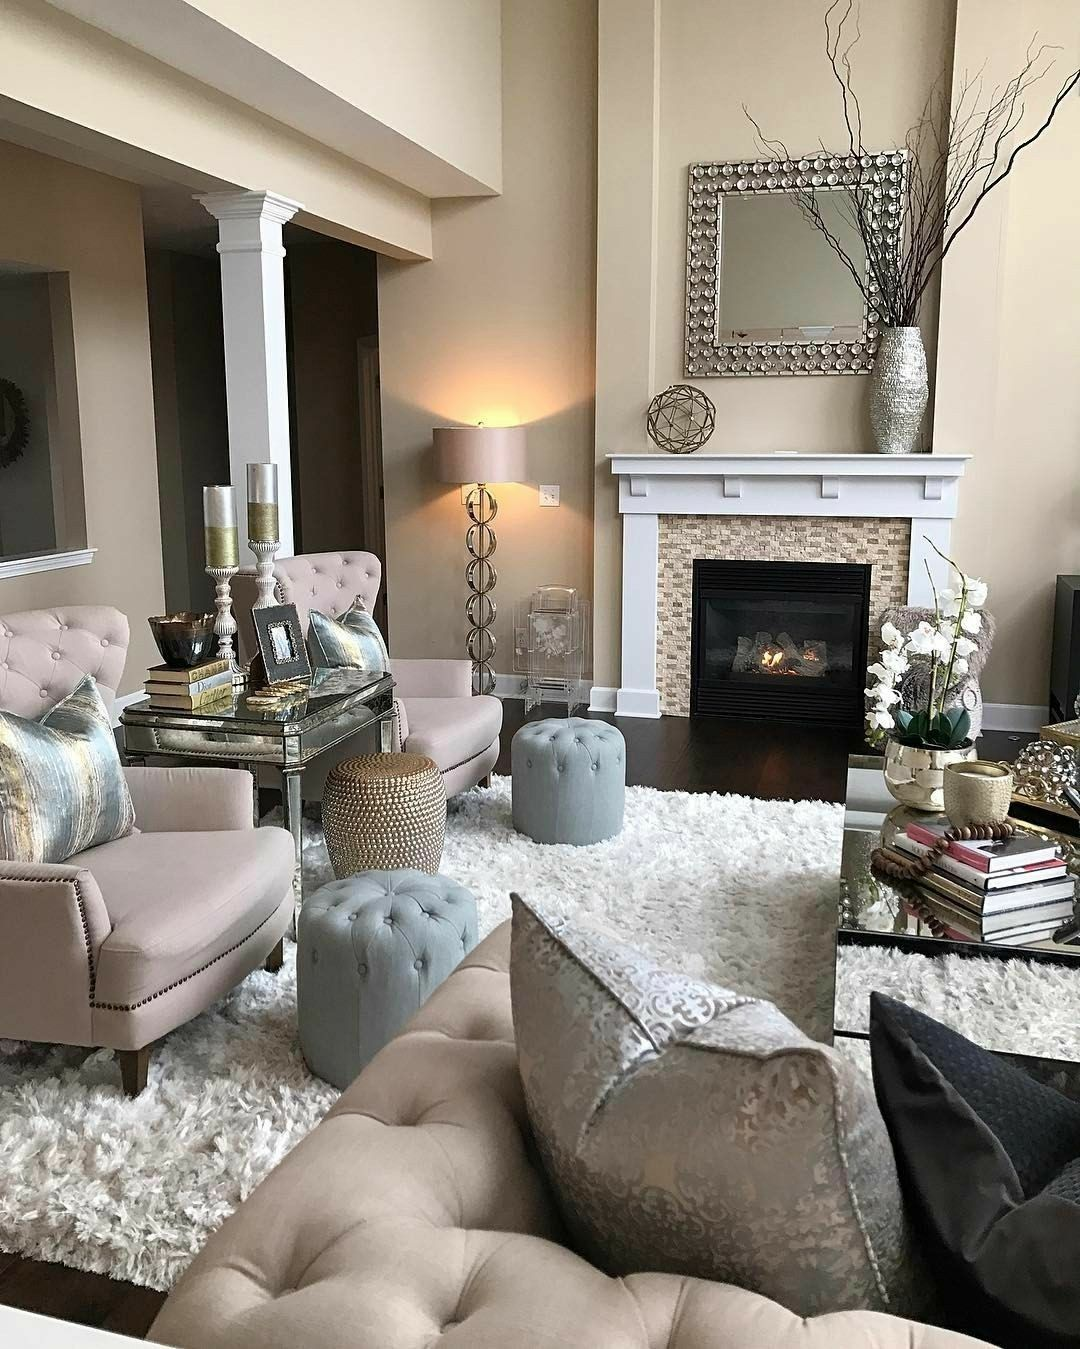 Pinterest: ohhyazmine | Beige living rooms, Living room ...